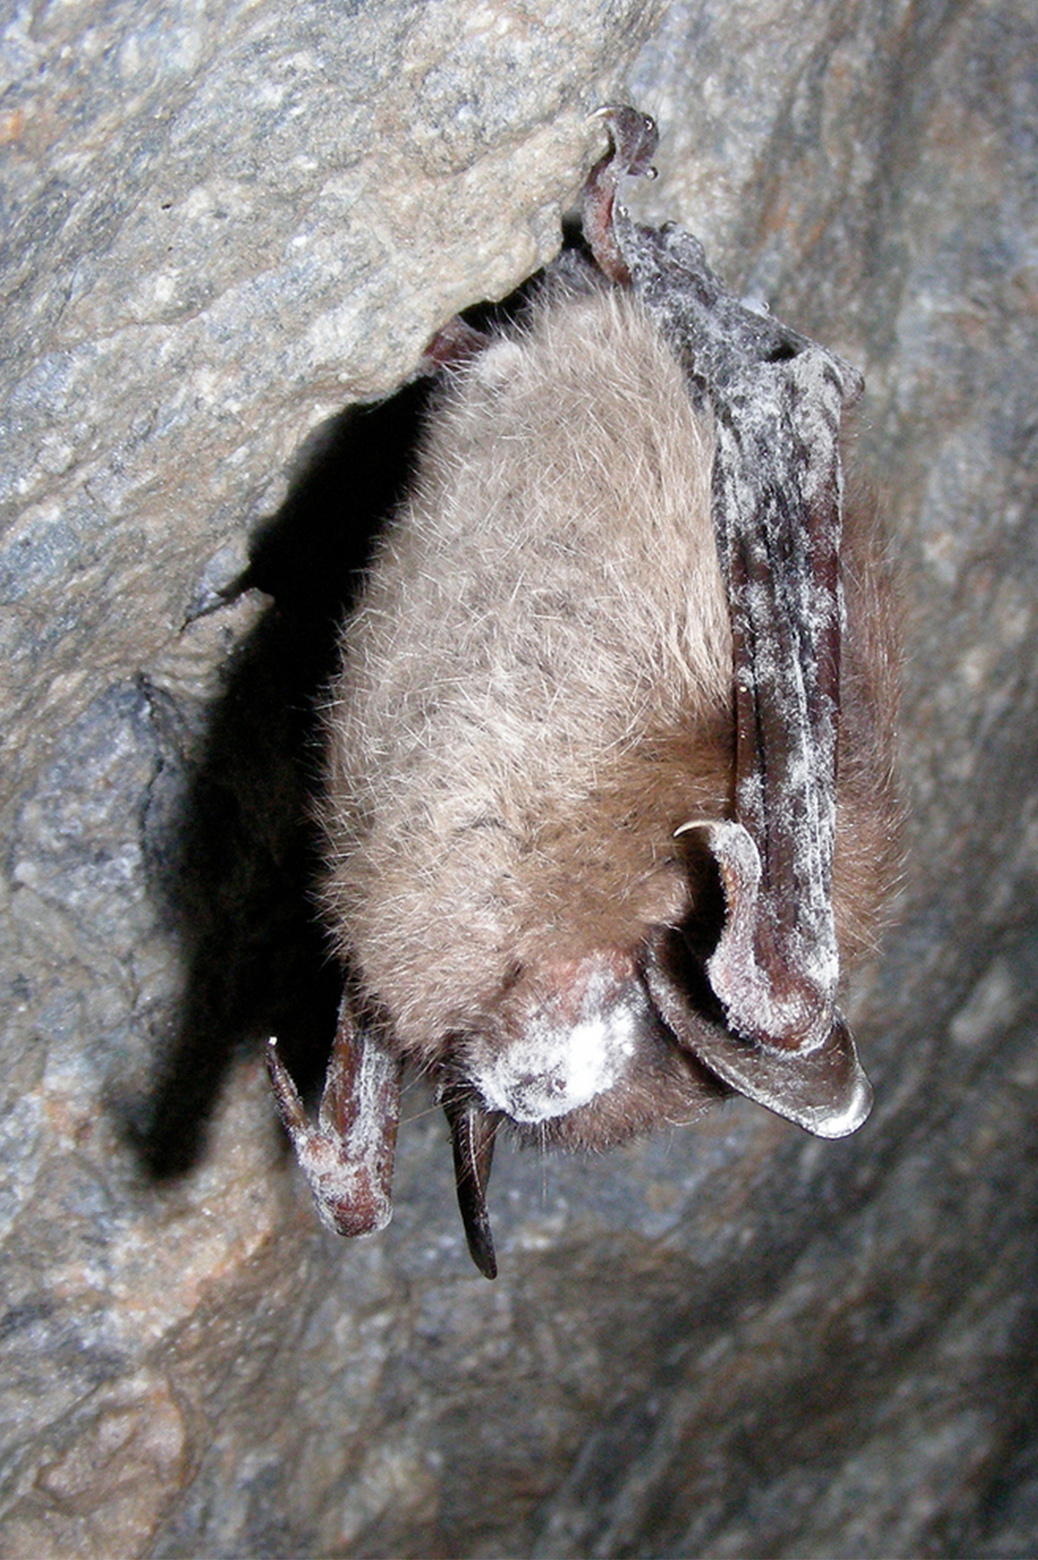 A little brown bat with white-nose syndrome